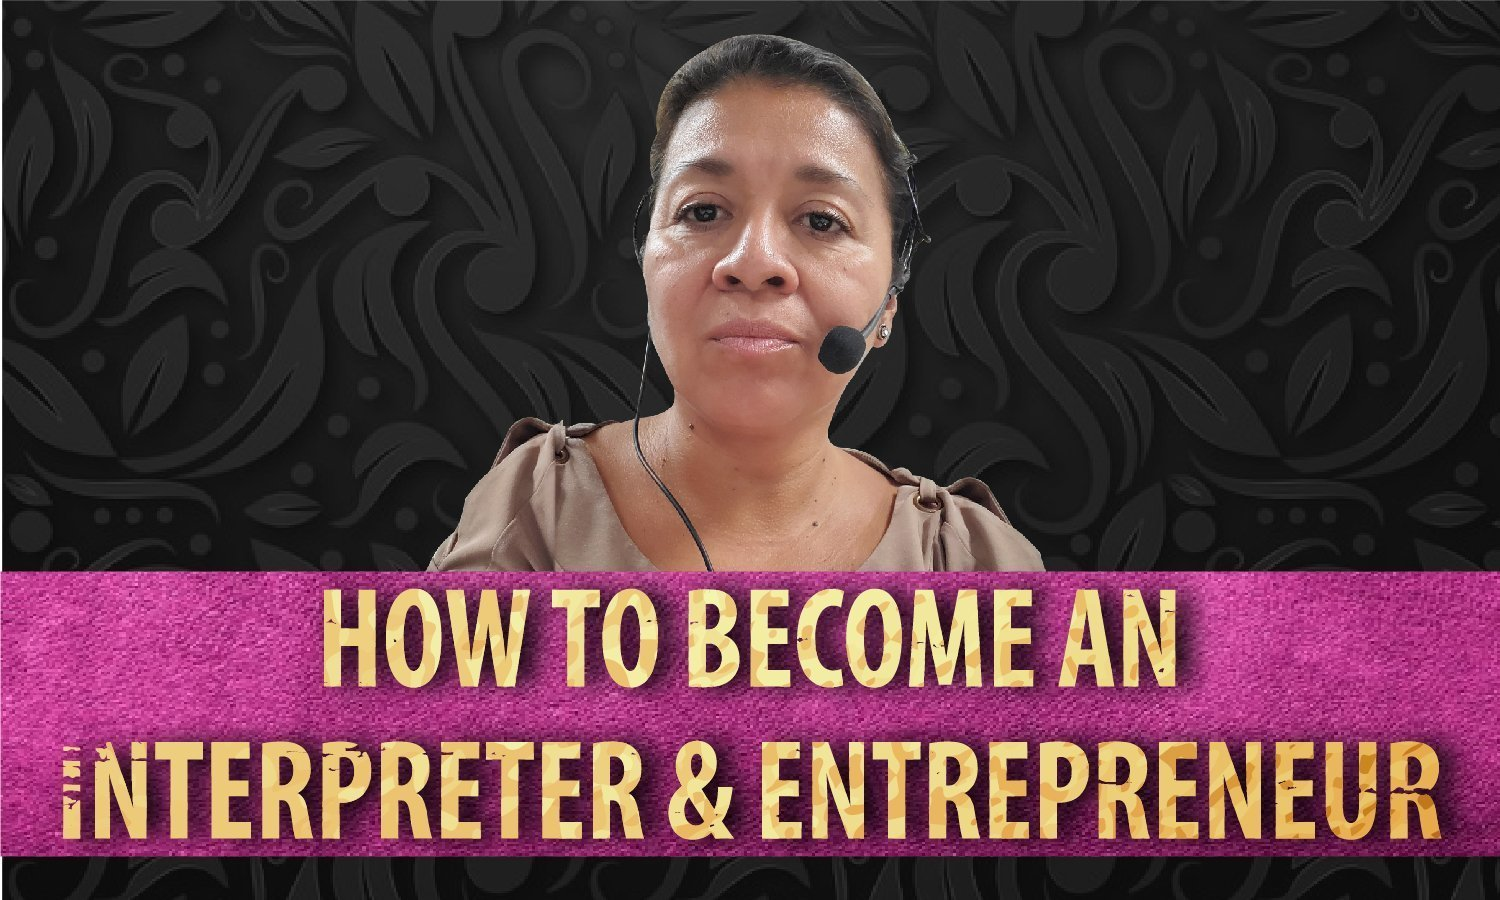 How to Become an Interpreter and Entrepreneur